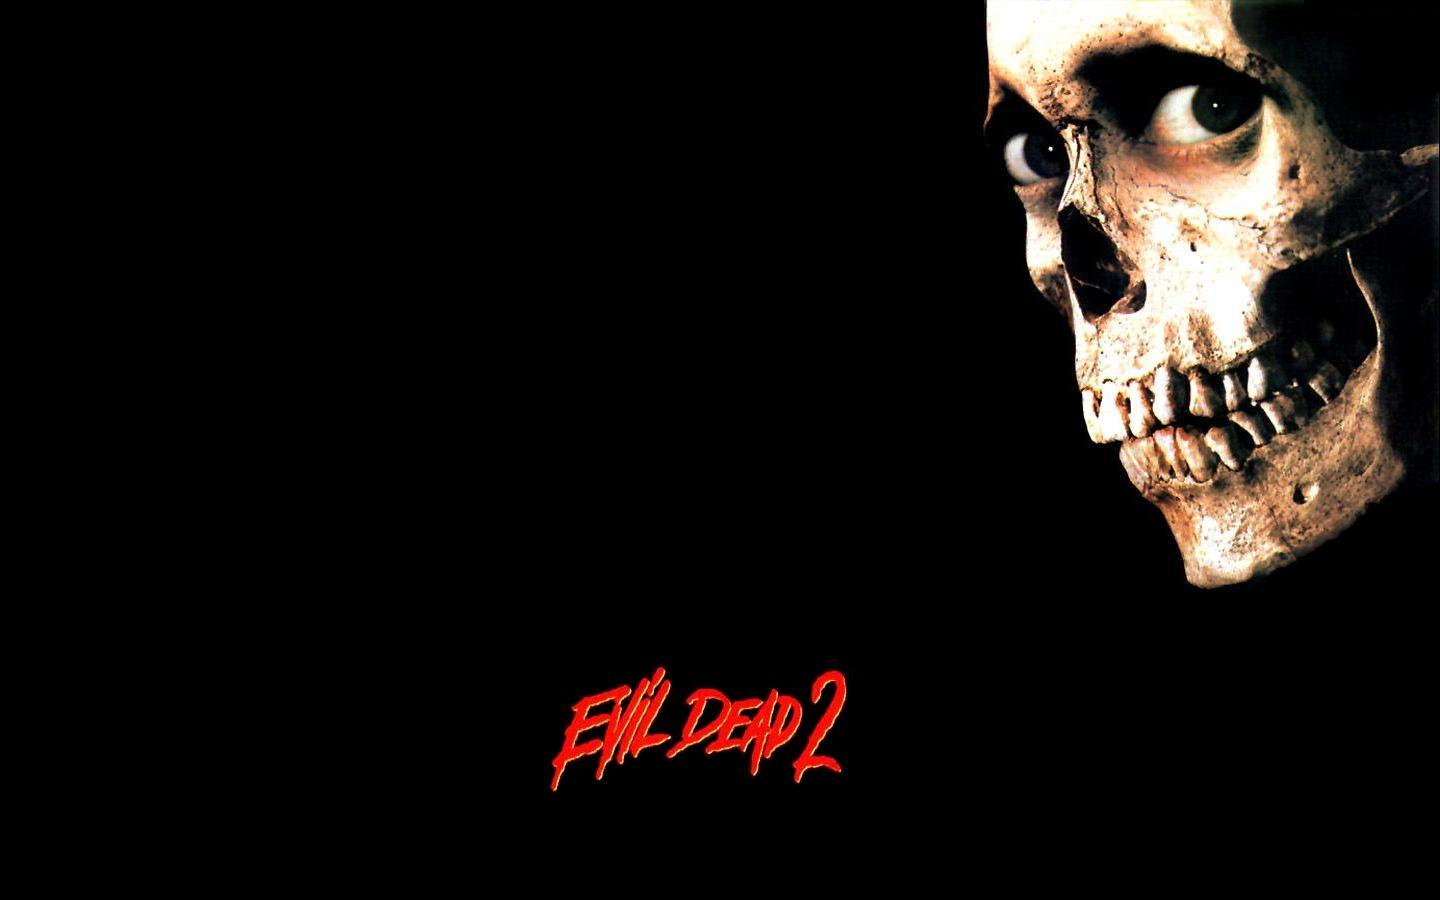 Evil Dead Wallpapers - Wallpaper Cave